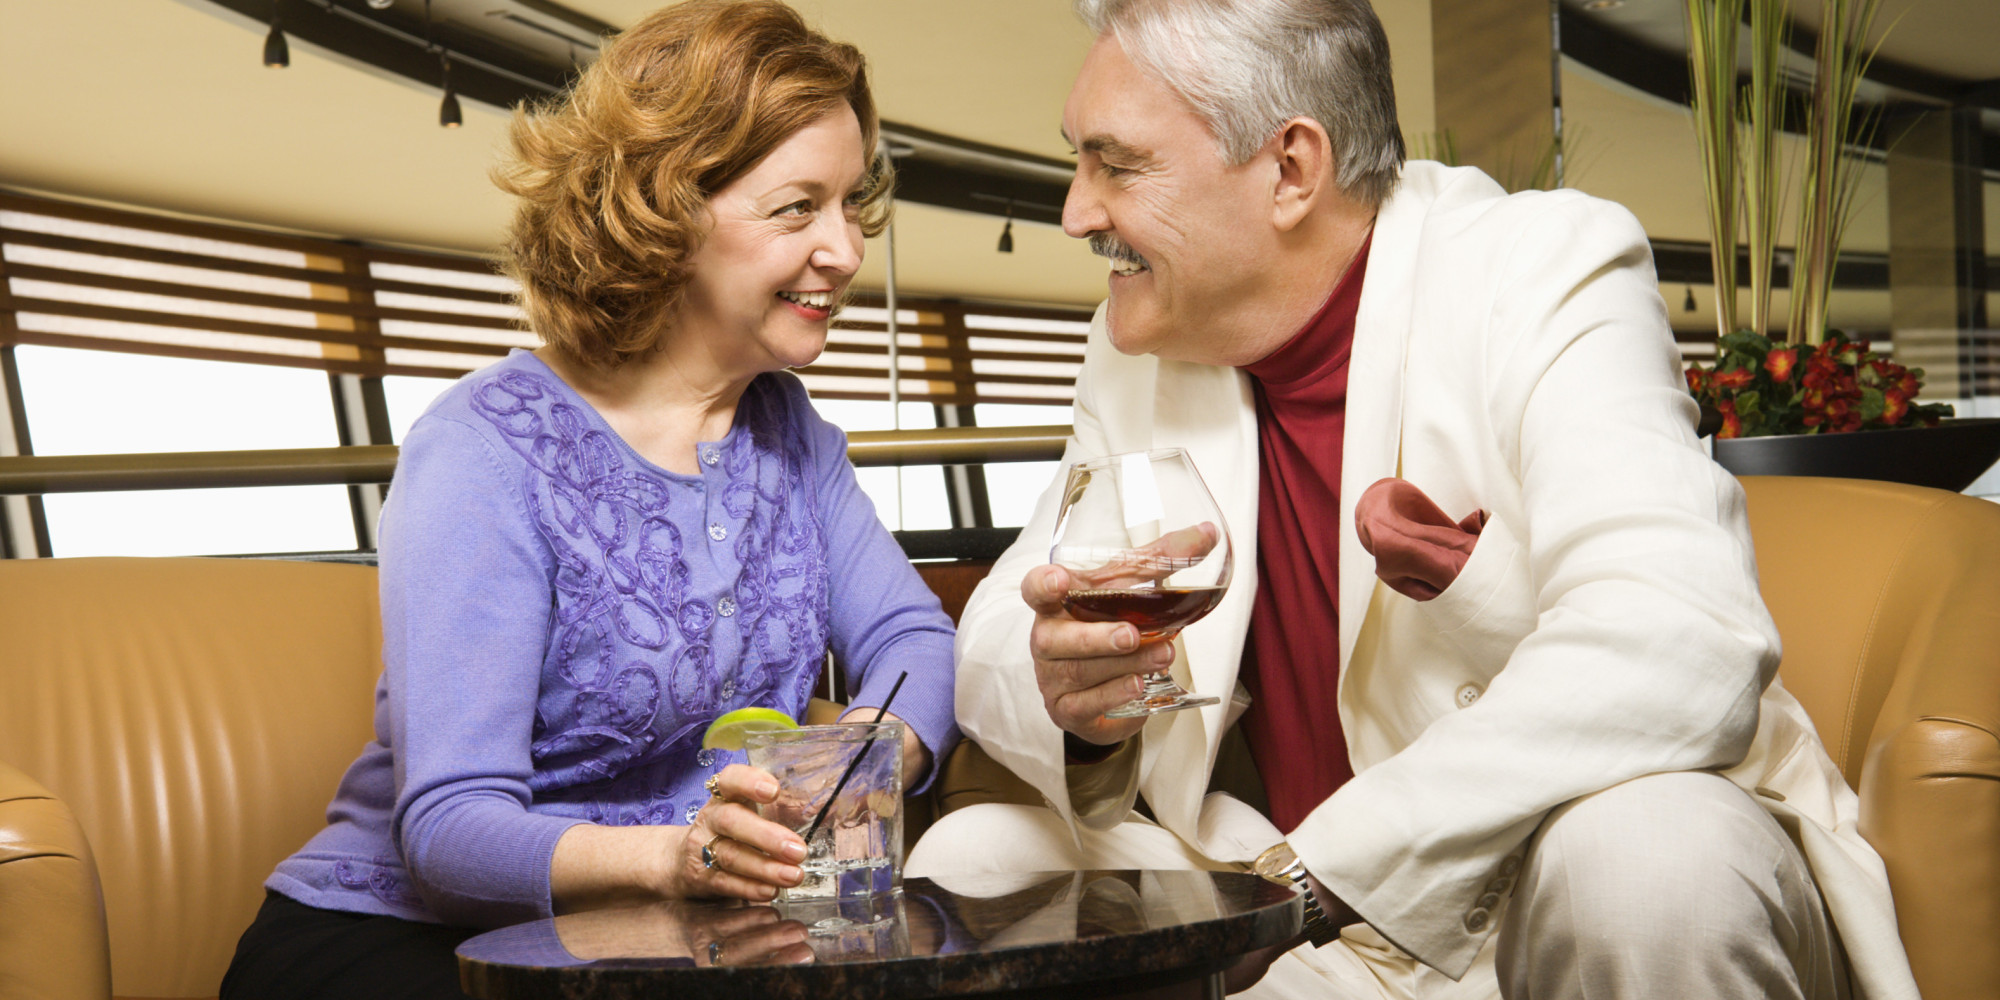 middle aged dating advice Singles are among the fastest growing group of cruisers, and middle-aged singles often have more time and disposable income for a cruise vacation than younger travelers if you're a single person 40 and older, you have a couple of different options you can cruise solo, making sure you choose a.